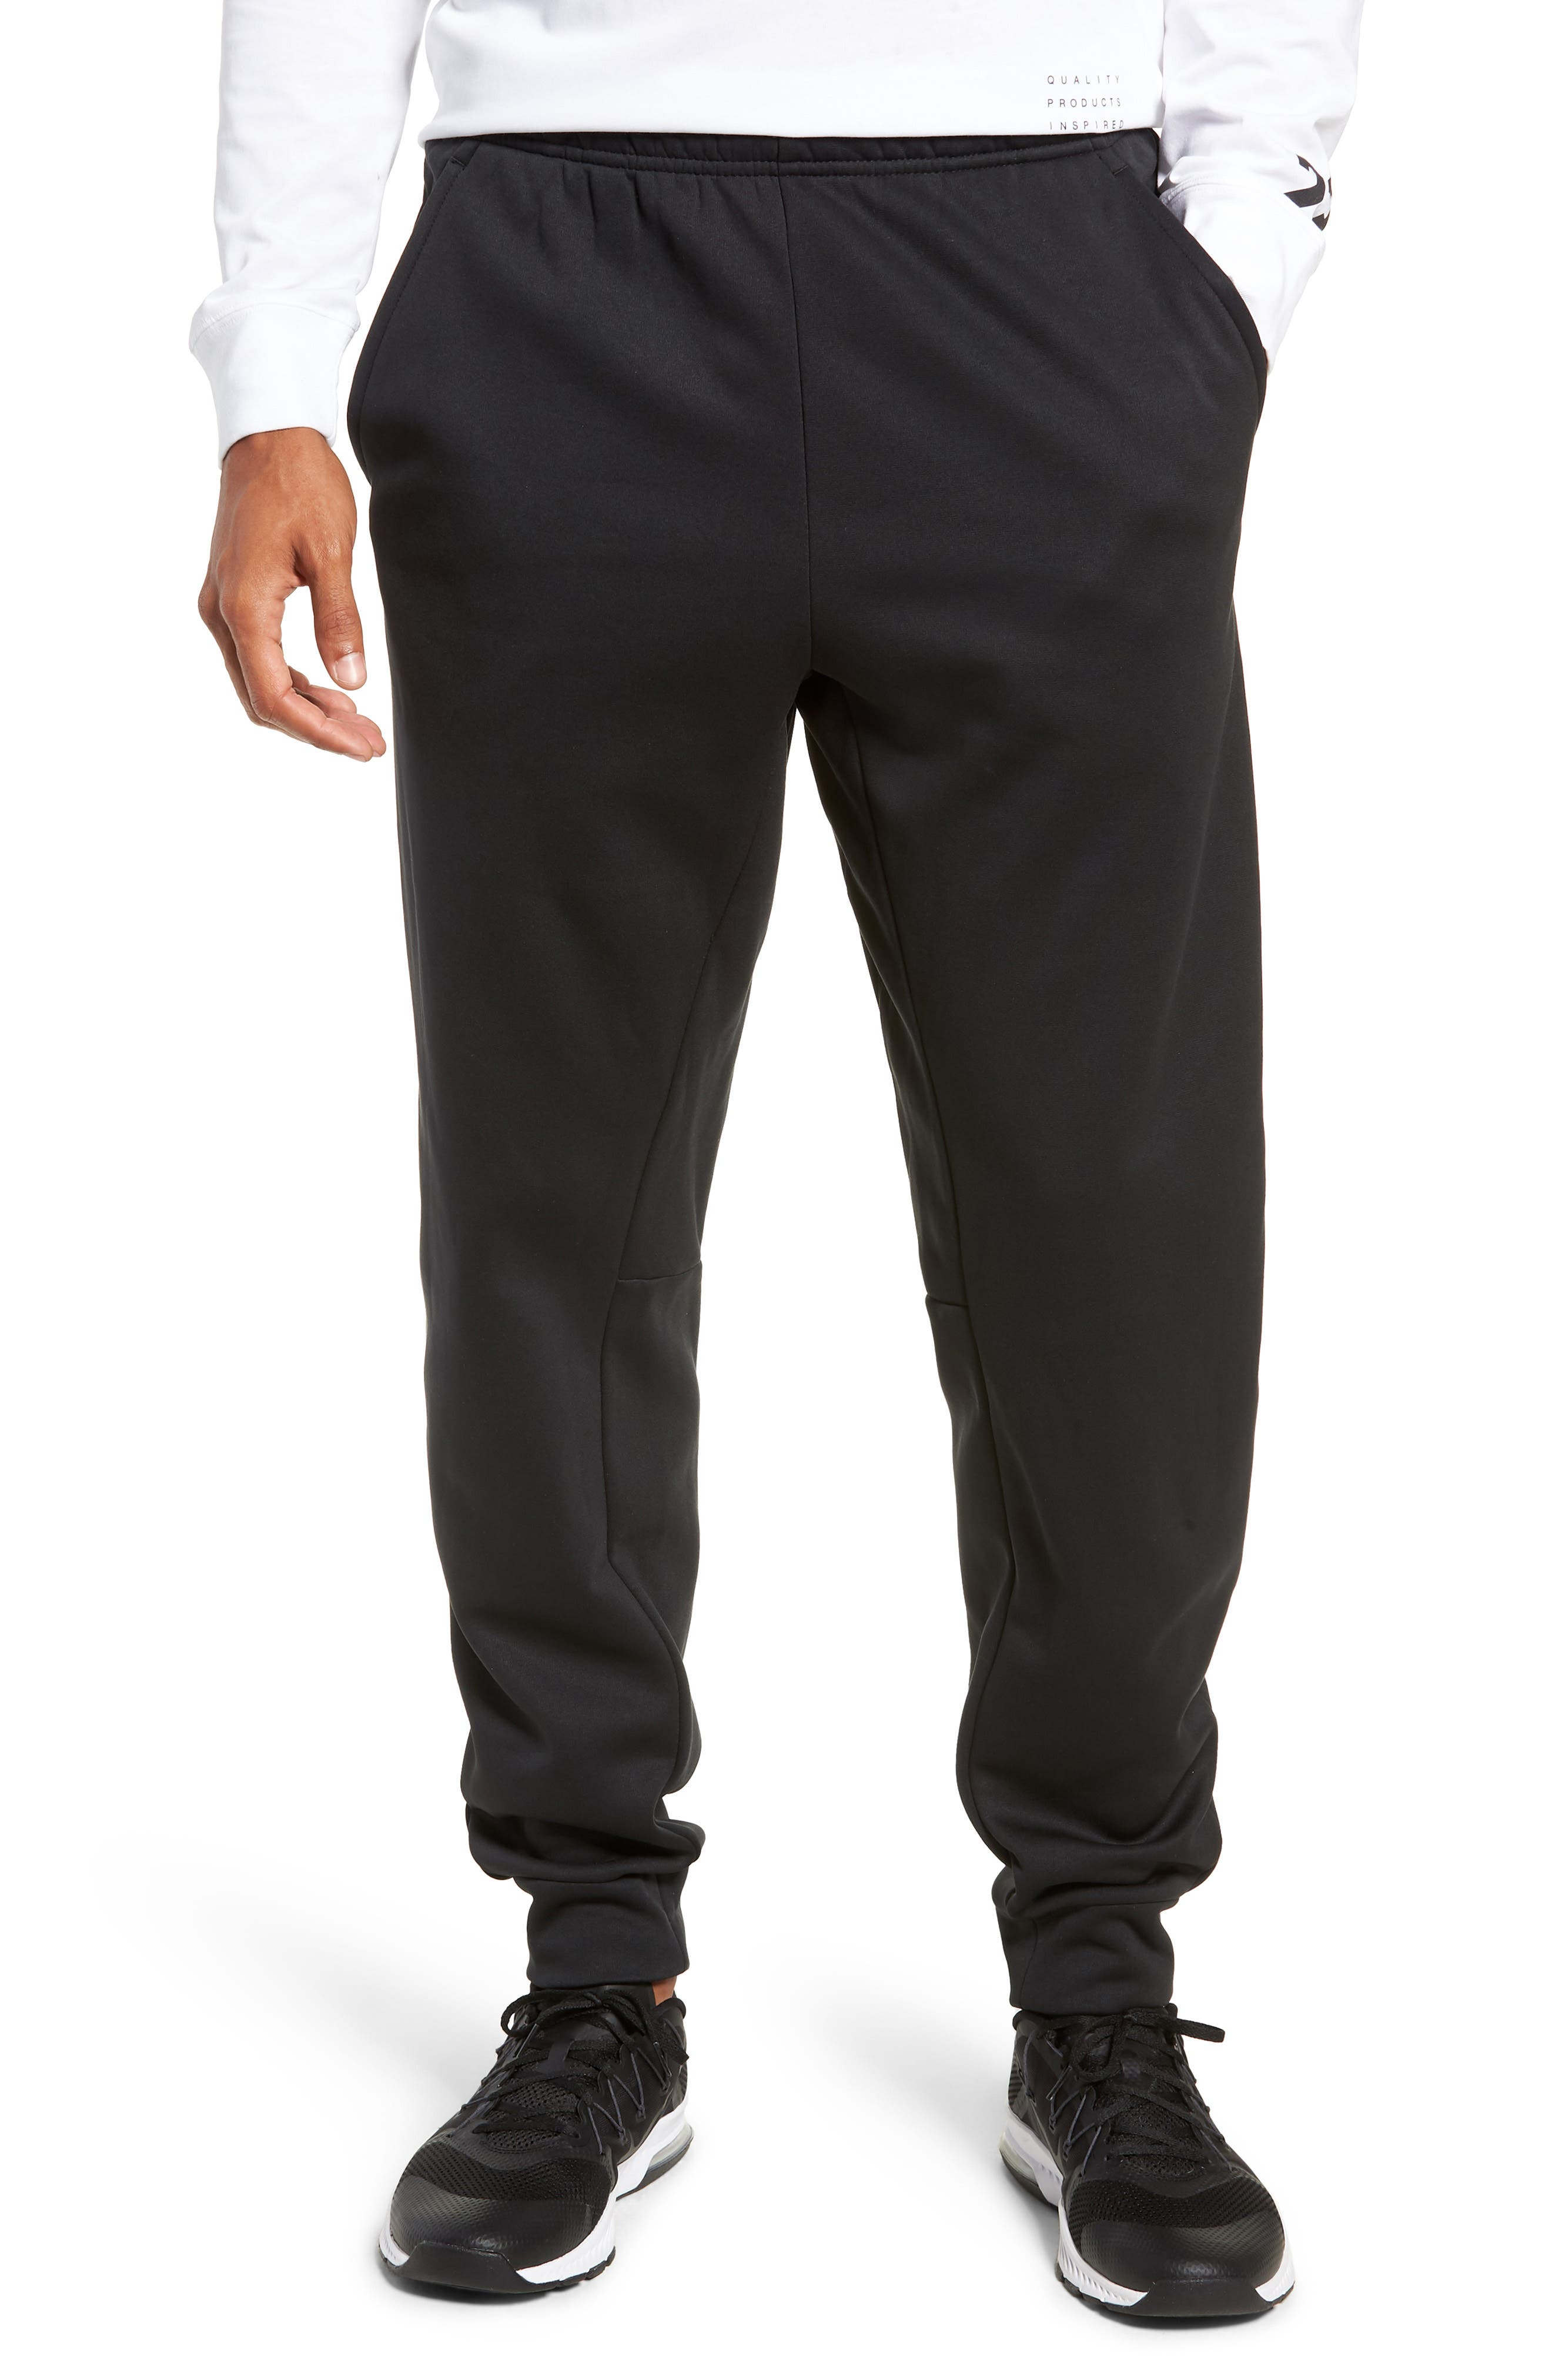 Therma Tapered Pants,                         Main,                         color, BLACK/ WHITE